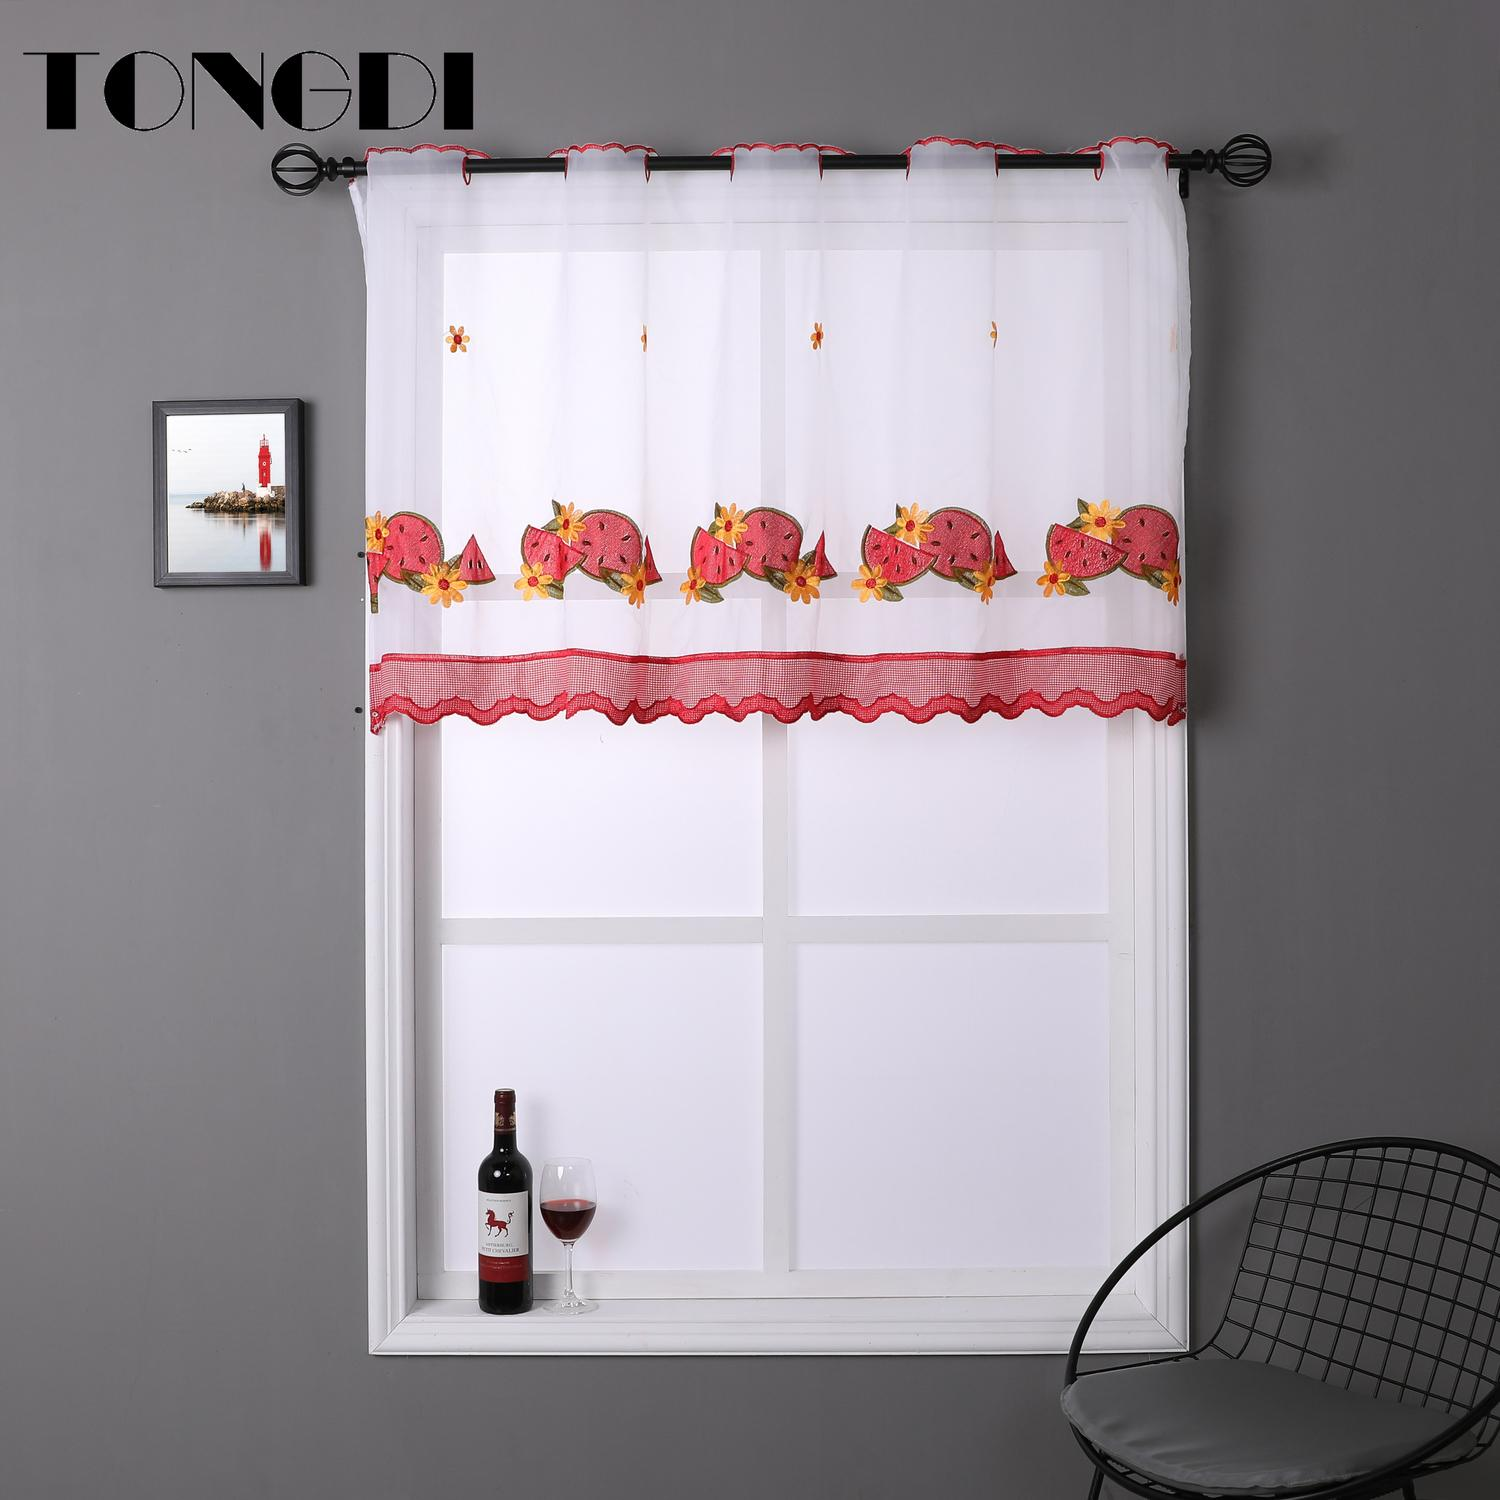 Tongdi Kitchen Curtain Valance Sheer Curtains Tiers Pastorall Fruit Cafe Tulle Beautiful Of Kitchen Dining Y200421 Ivory Sheer Curtains Light Blue Sheer Curtains From Highqualit06 17 84 Dhgate Com